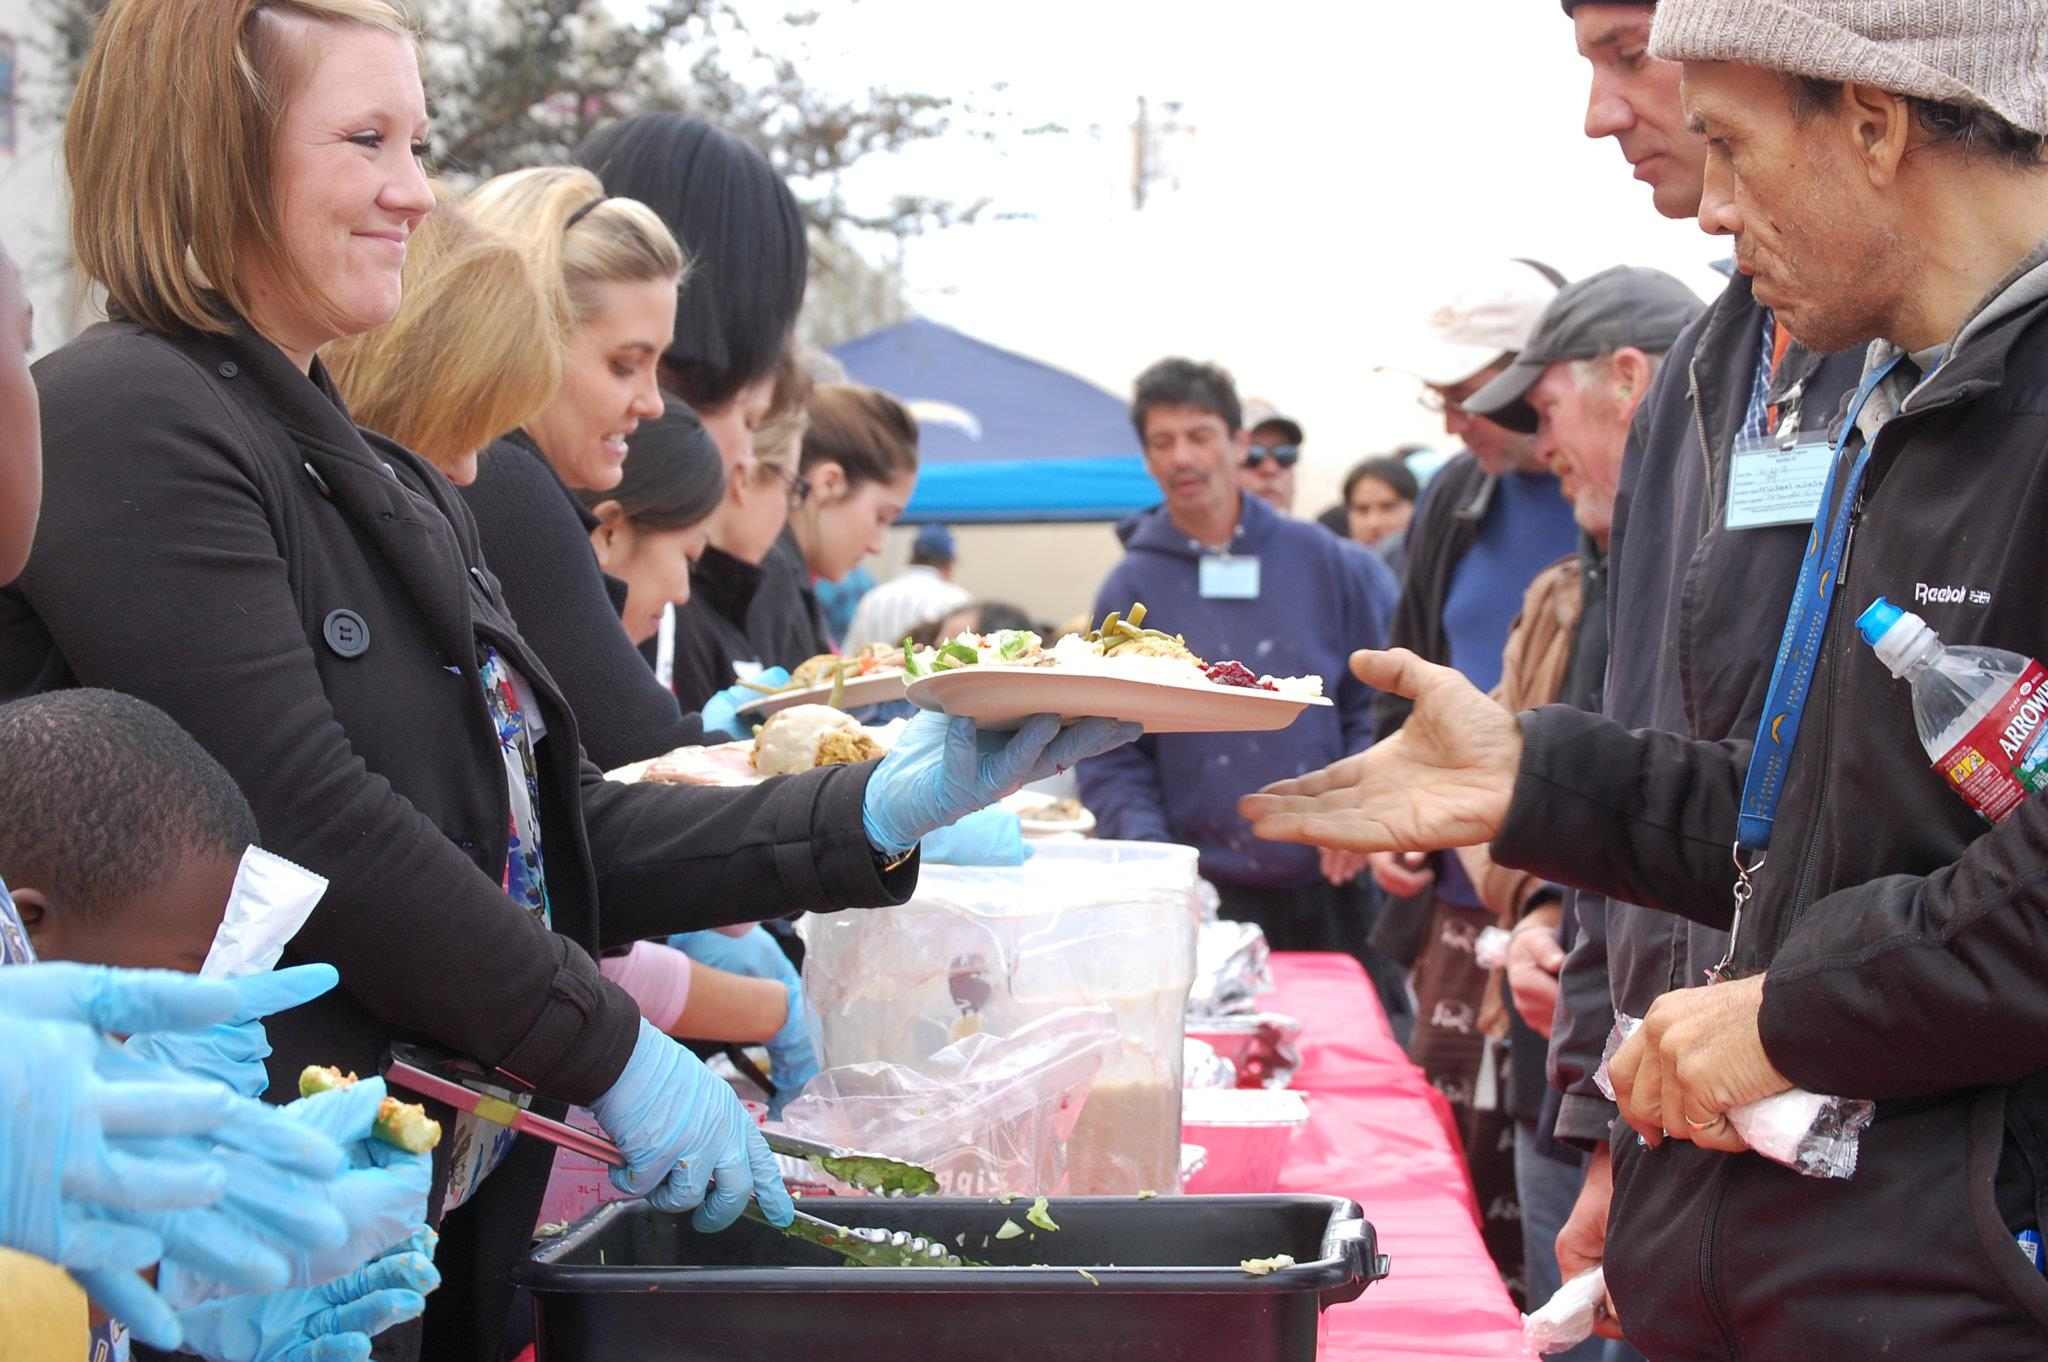 Tailgate Meals For The Homeless Hope Creek Charitable